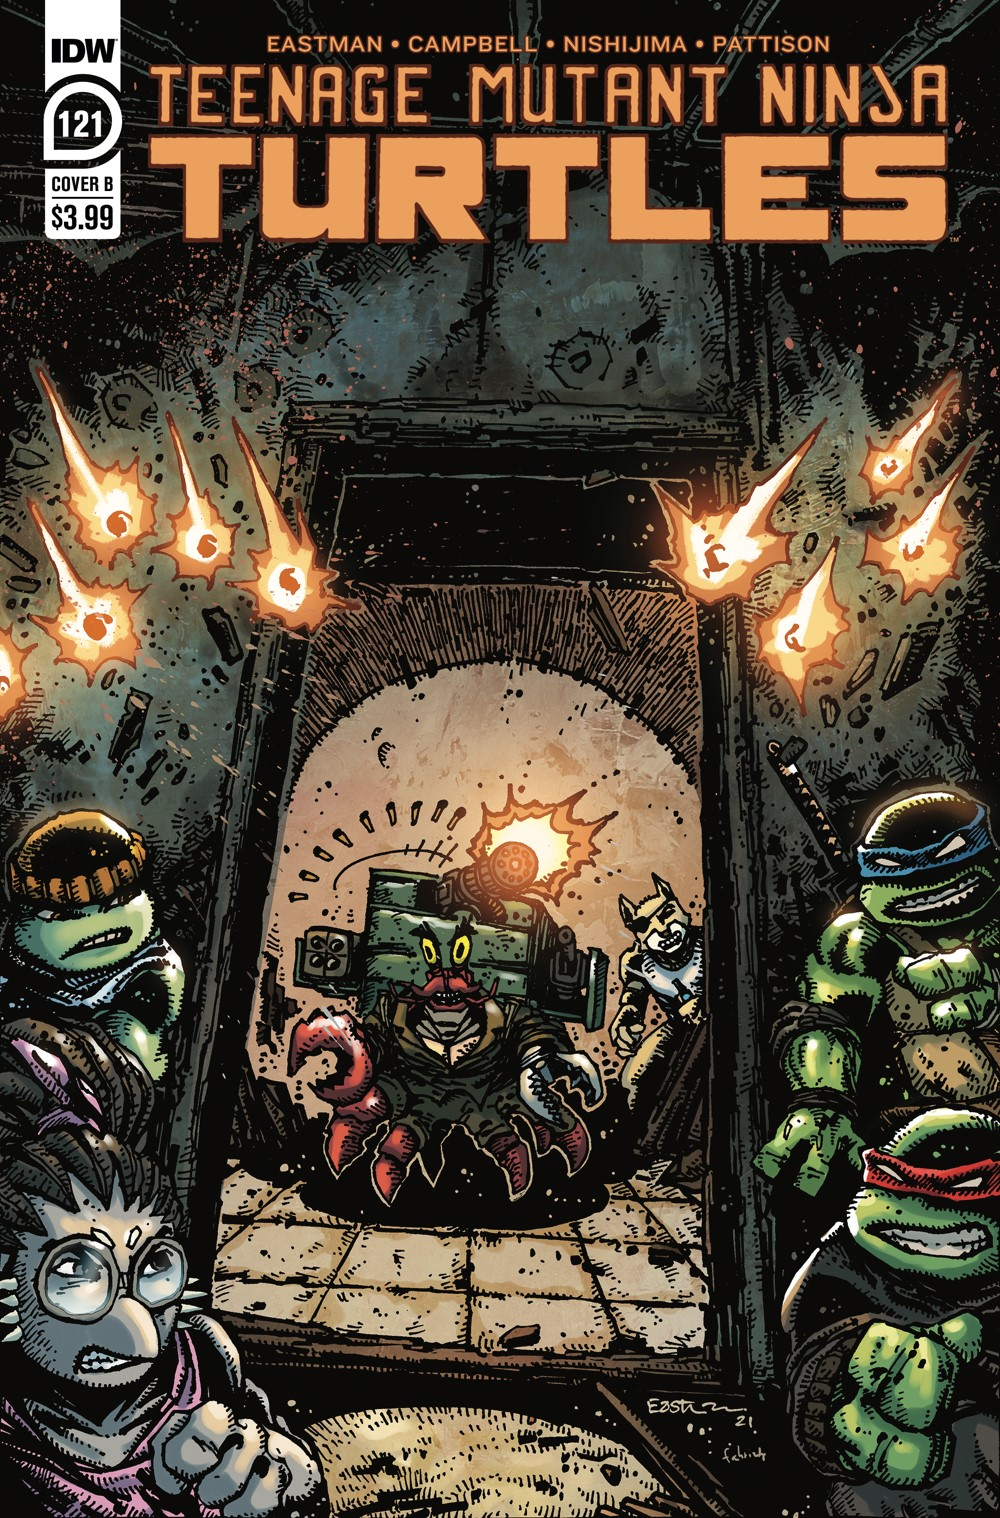 TMNT121_cvrB ComicList: IDW Publishing New Releases for 09/29/2021